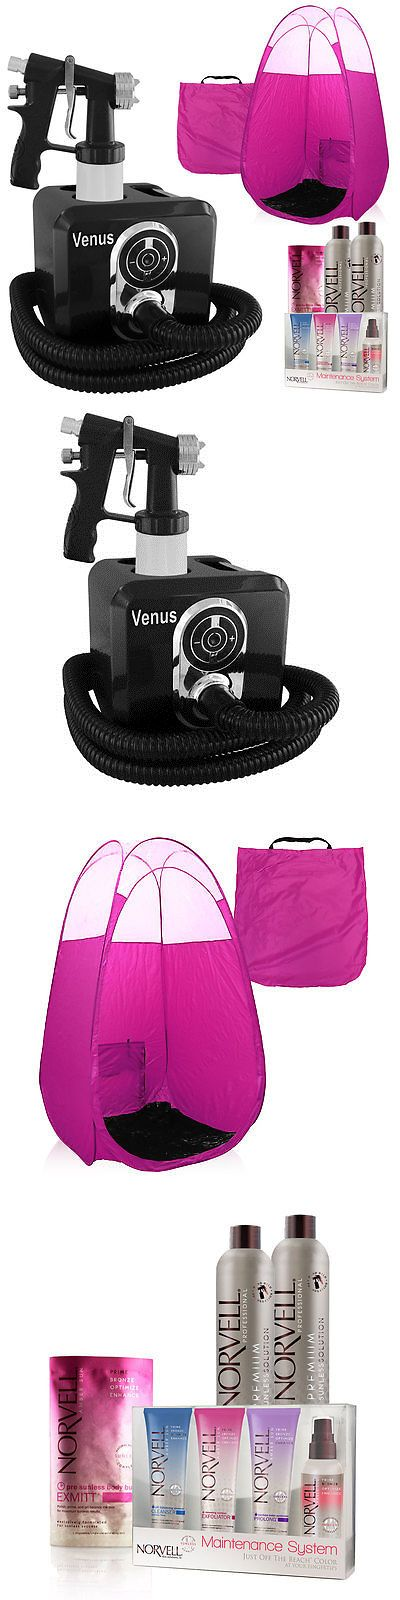 Airbrush Tanning Kits: Black Venus Spray Tan Machine, Pink Tent, Tanning Solution And Sunless Kit -> BUY IT NOW ONLY: $229 on eBay!